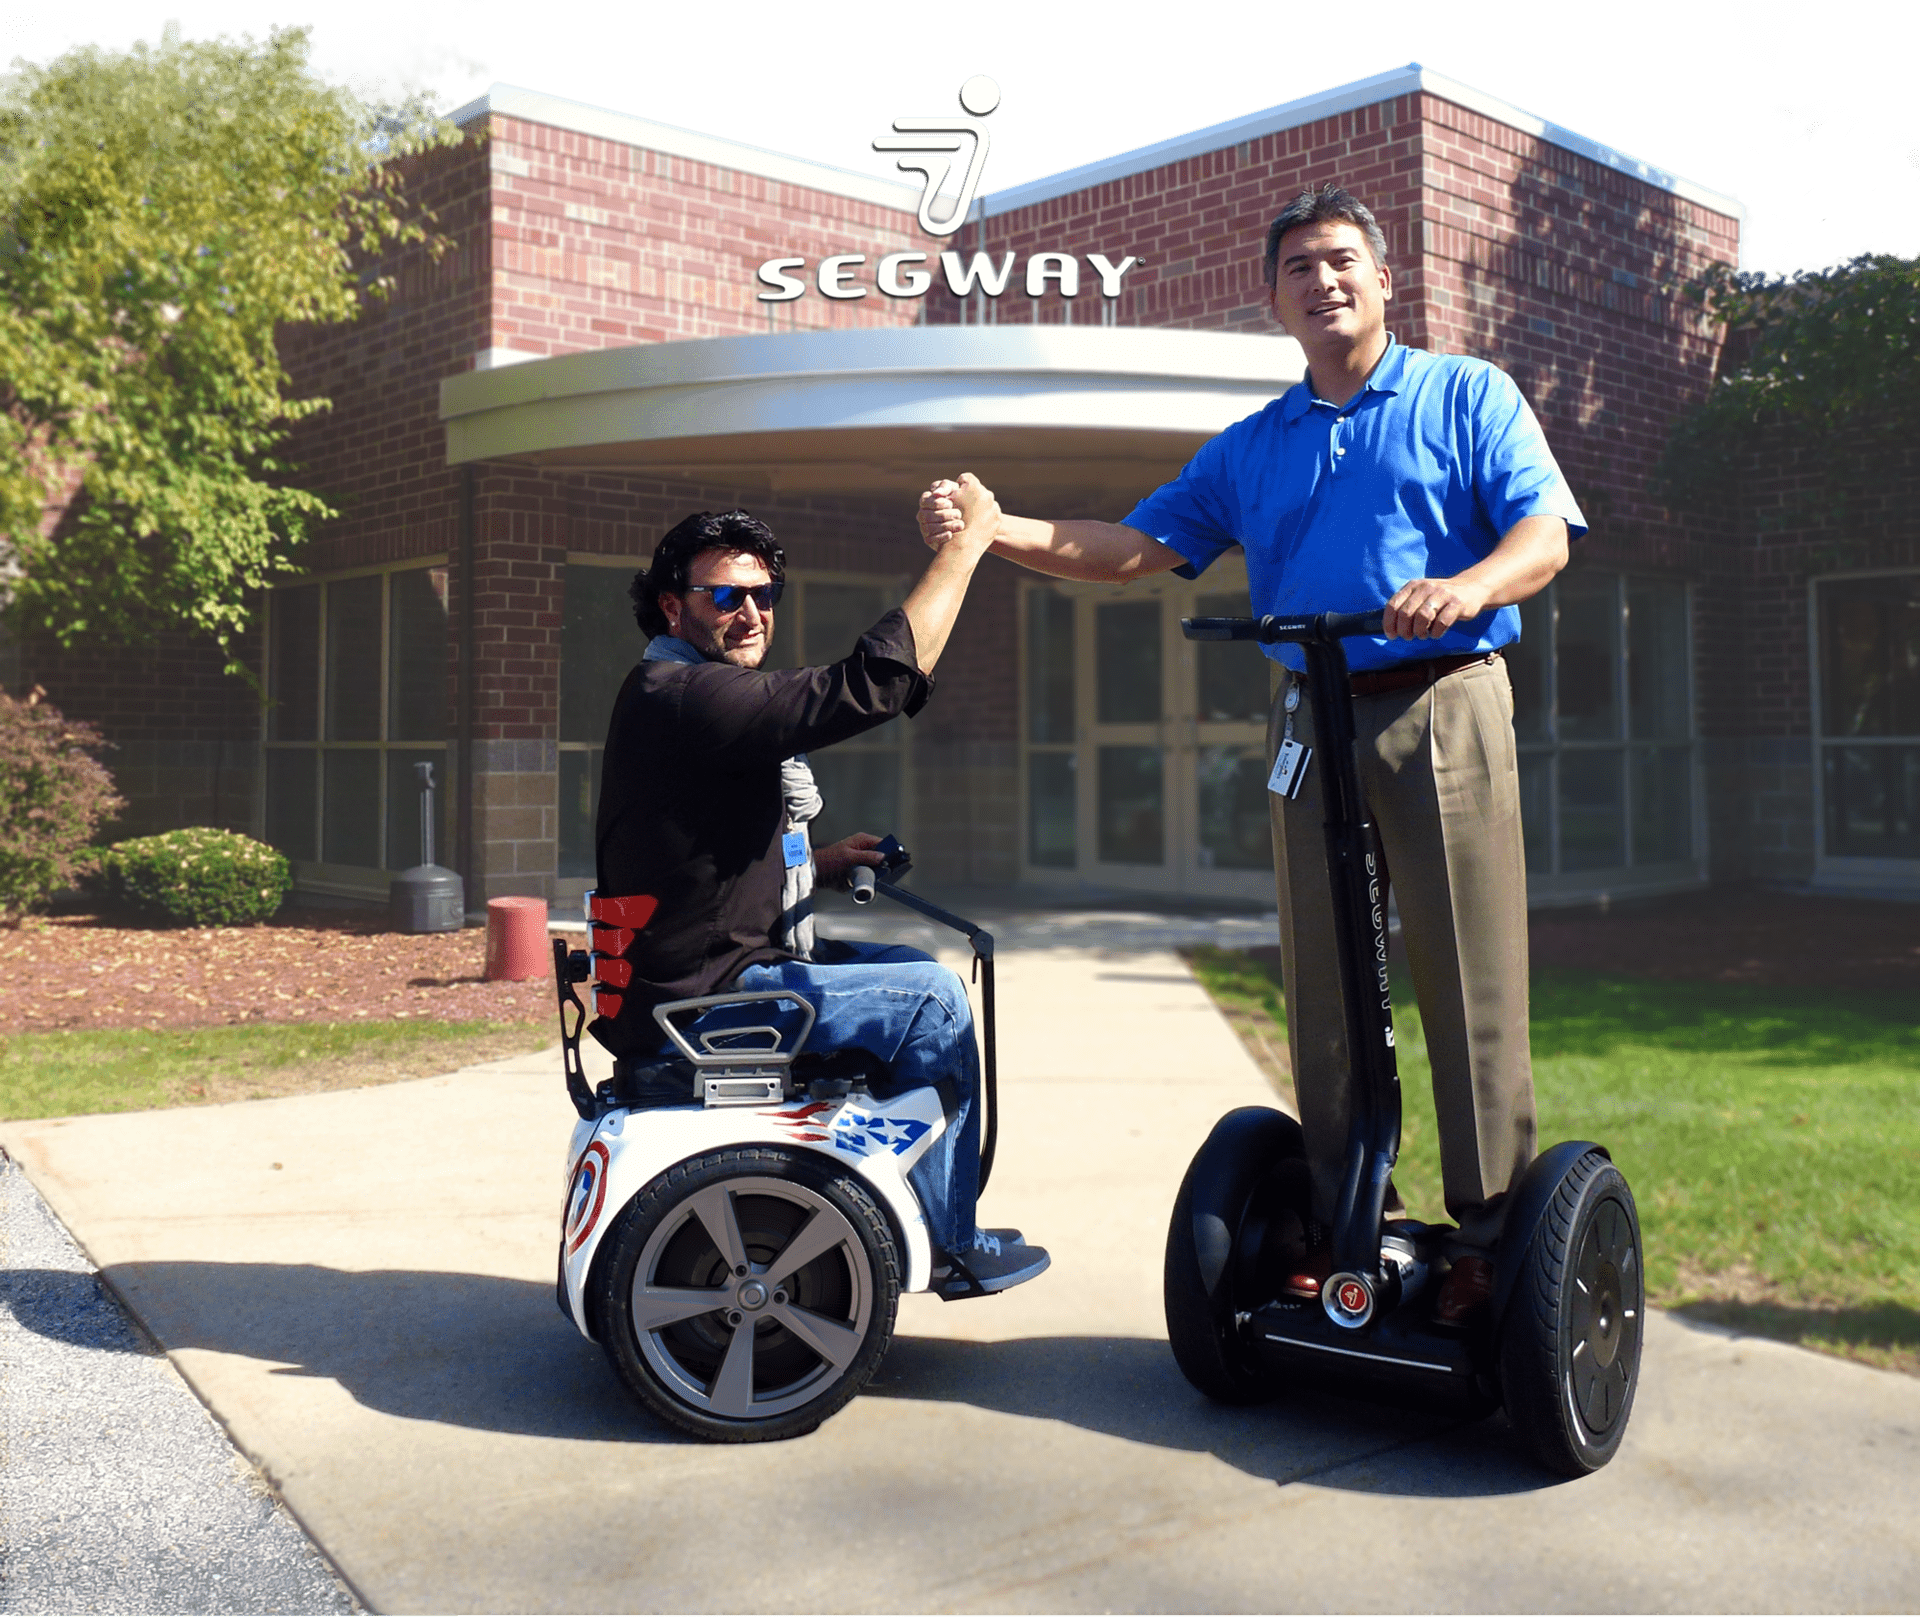 paolo with Mr segway